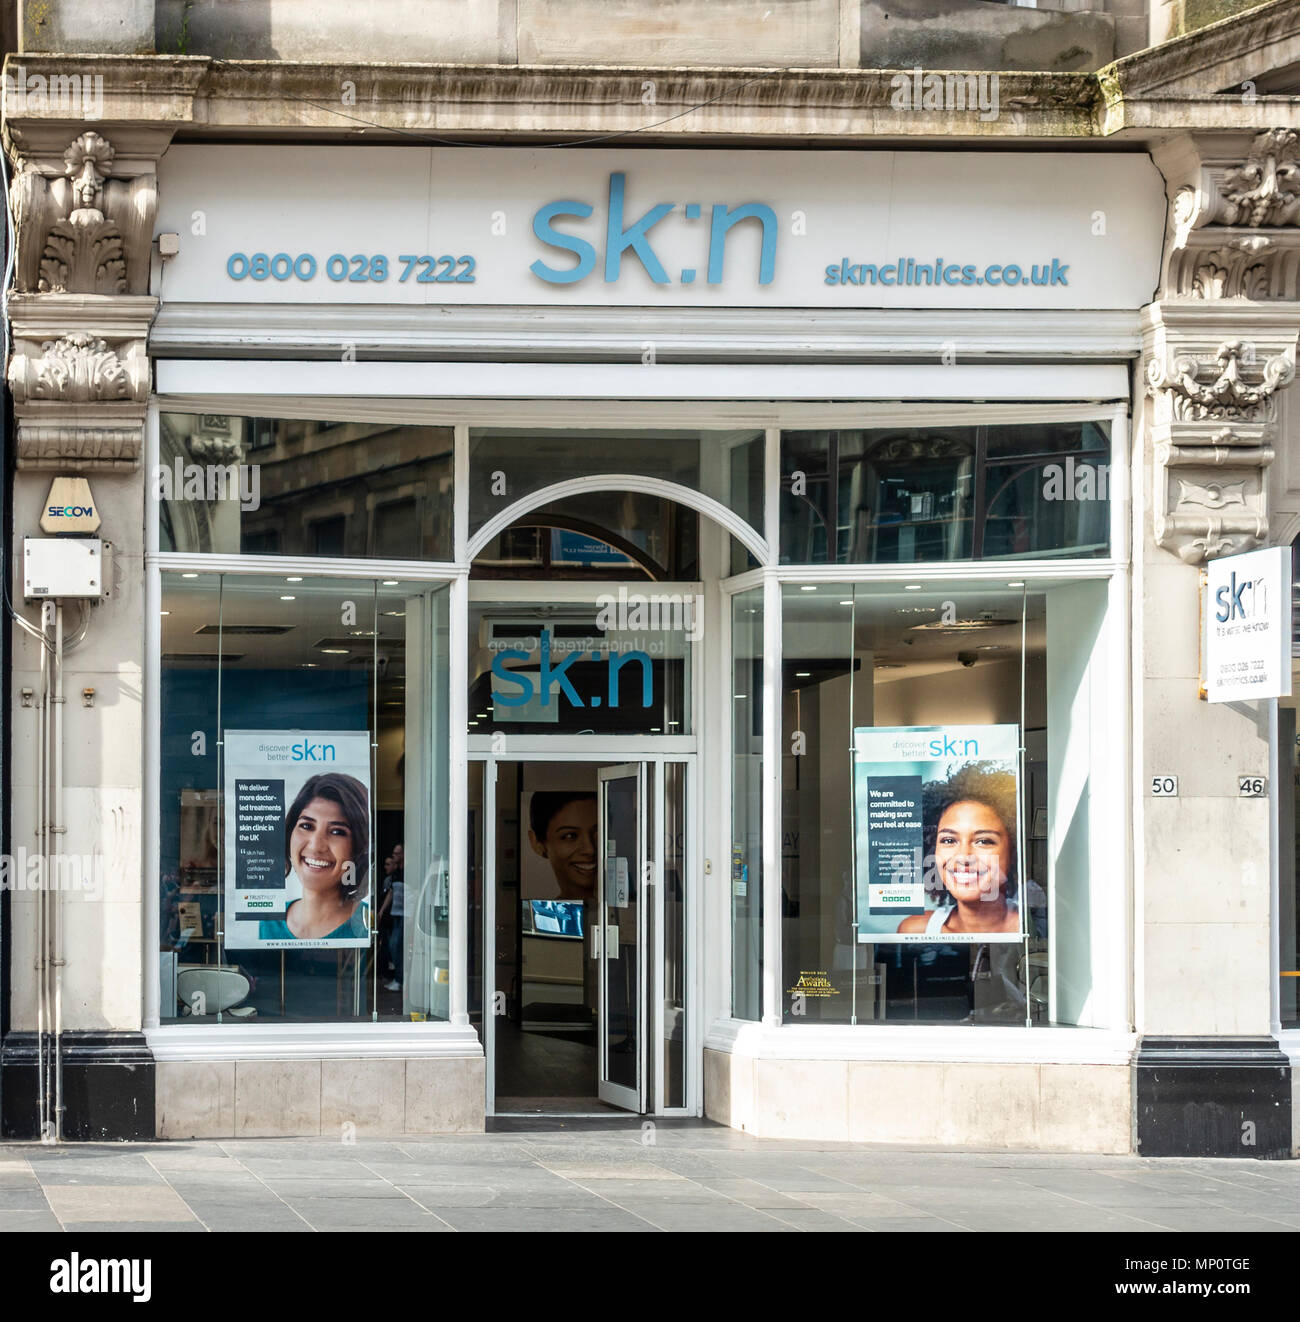 Shop frontage and entrance to the Sk:n clinic in central Glasgow, Scotland, UK - Stock Image